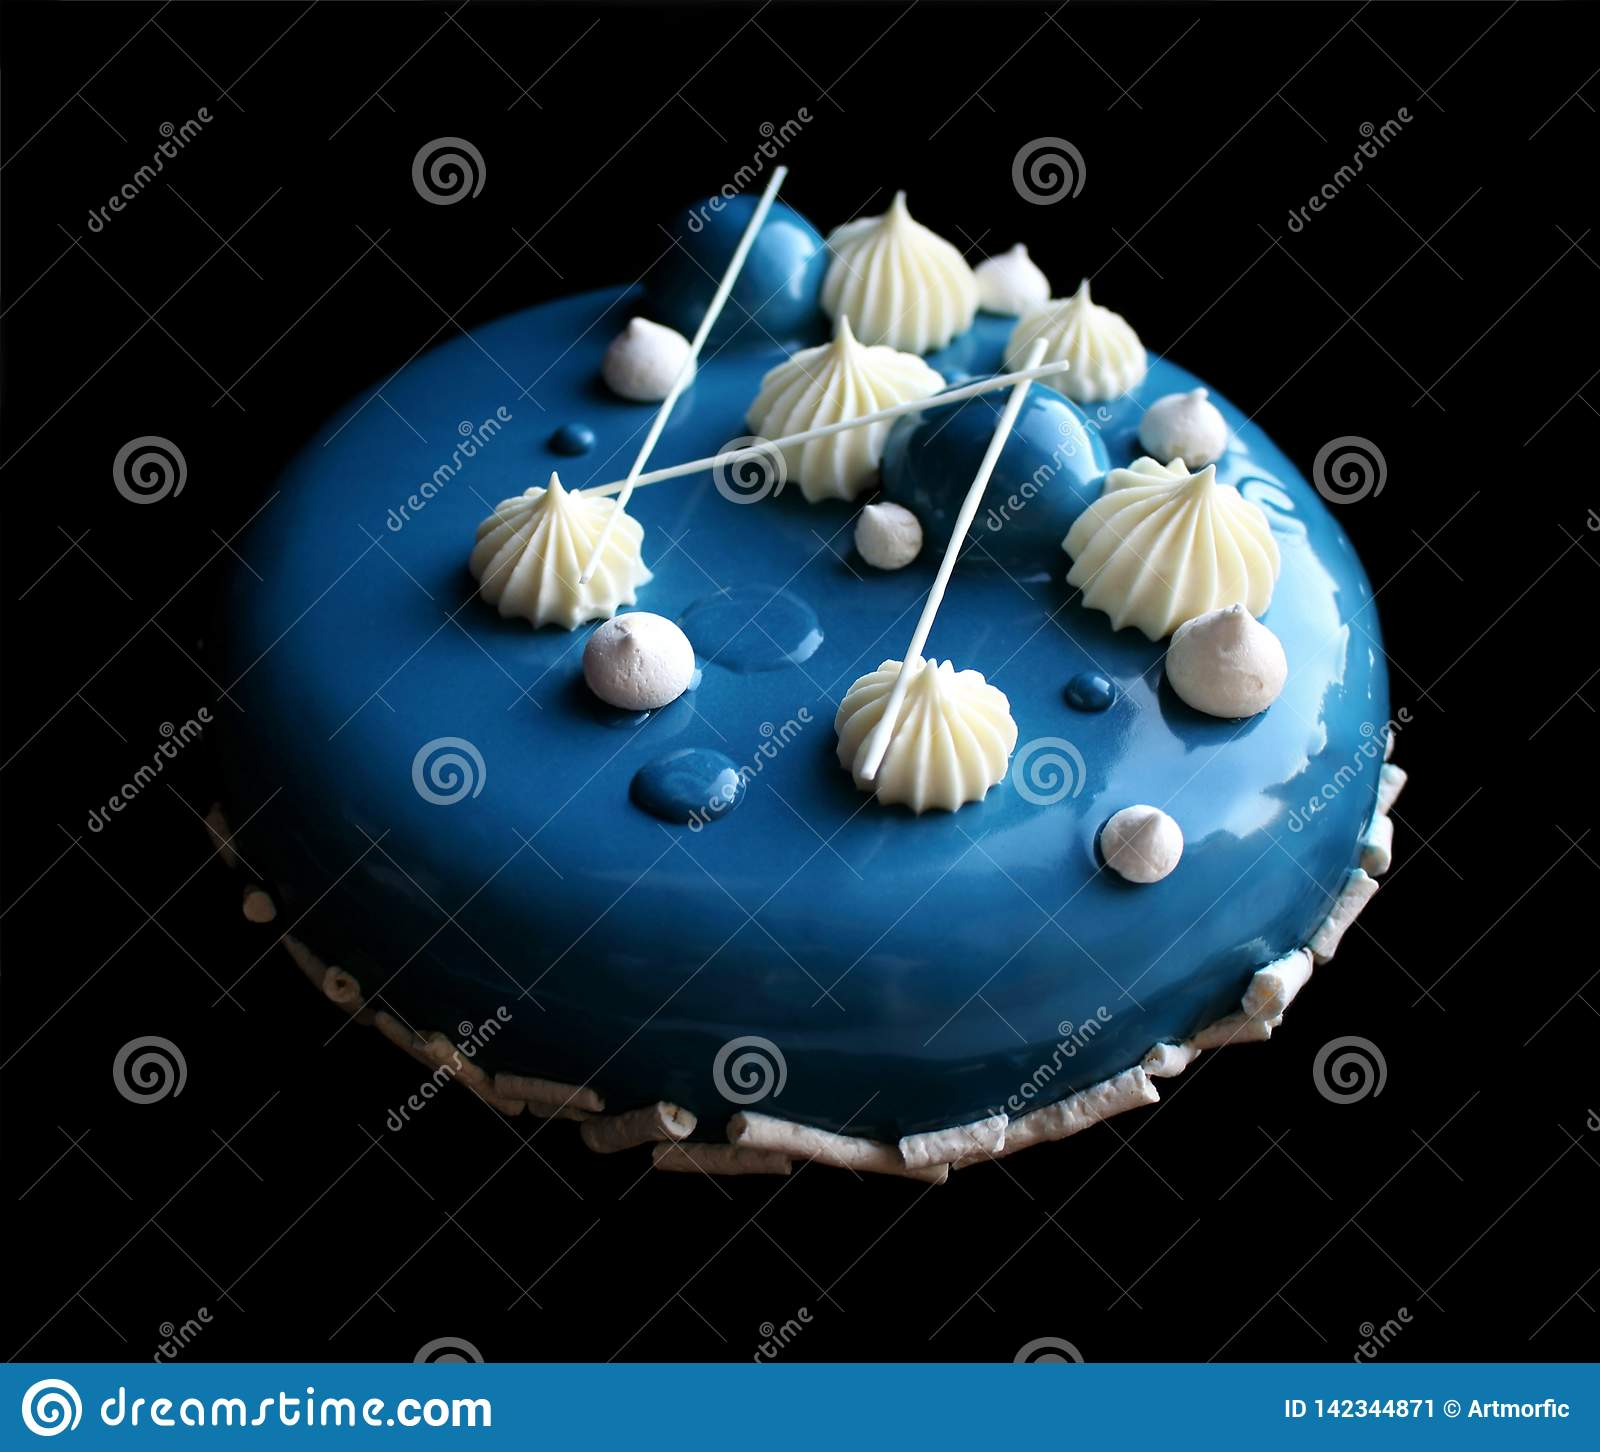 Blue and white cake with white shiny mousse cake with mirror glaze, meringues and ganache